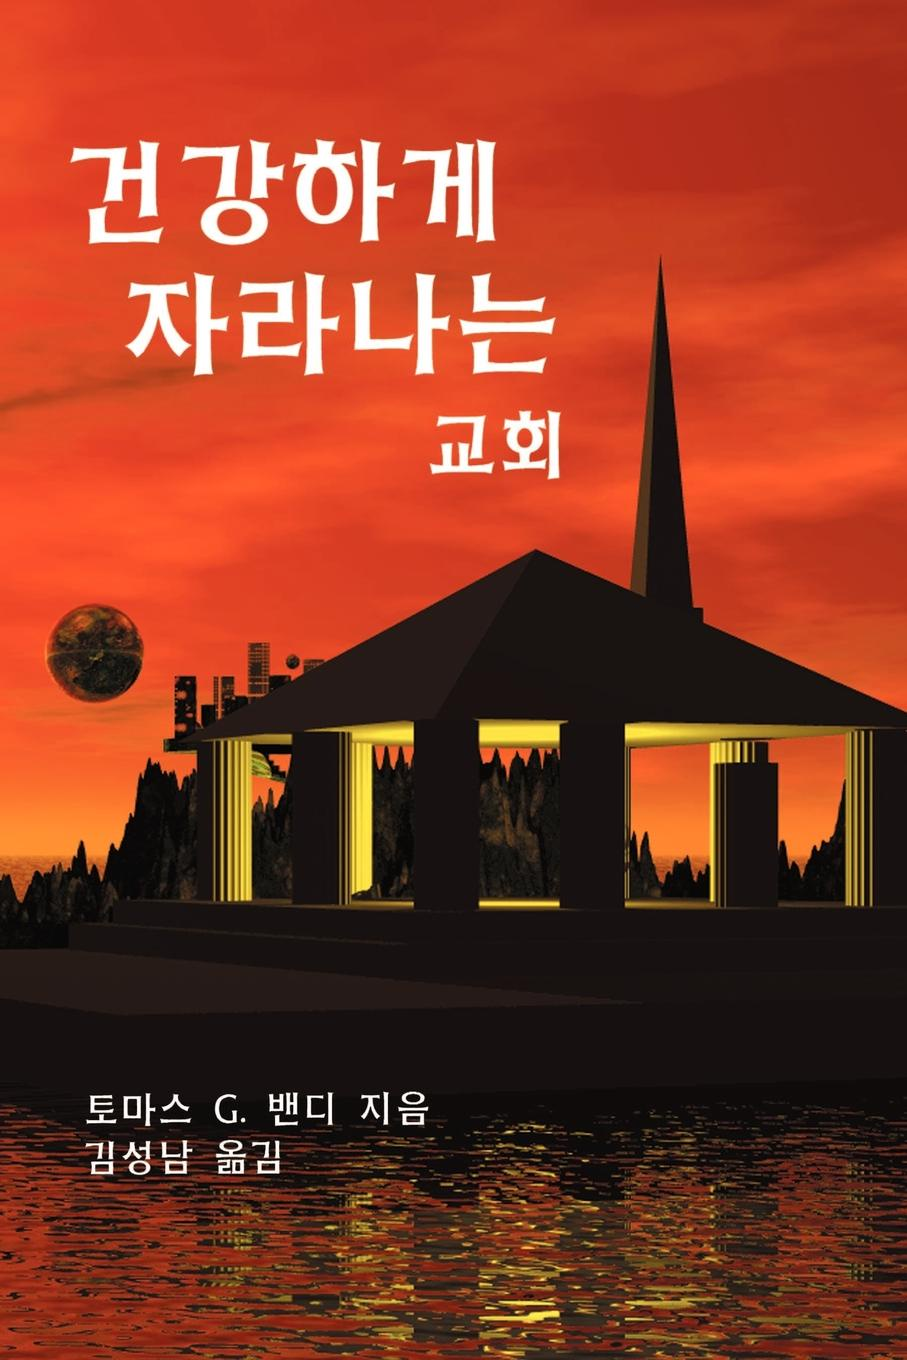 Thomas Bandy Kicking Habits Korean Version. Welcome Relief for Addicted Churches Version